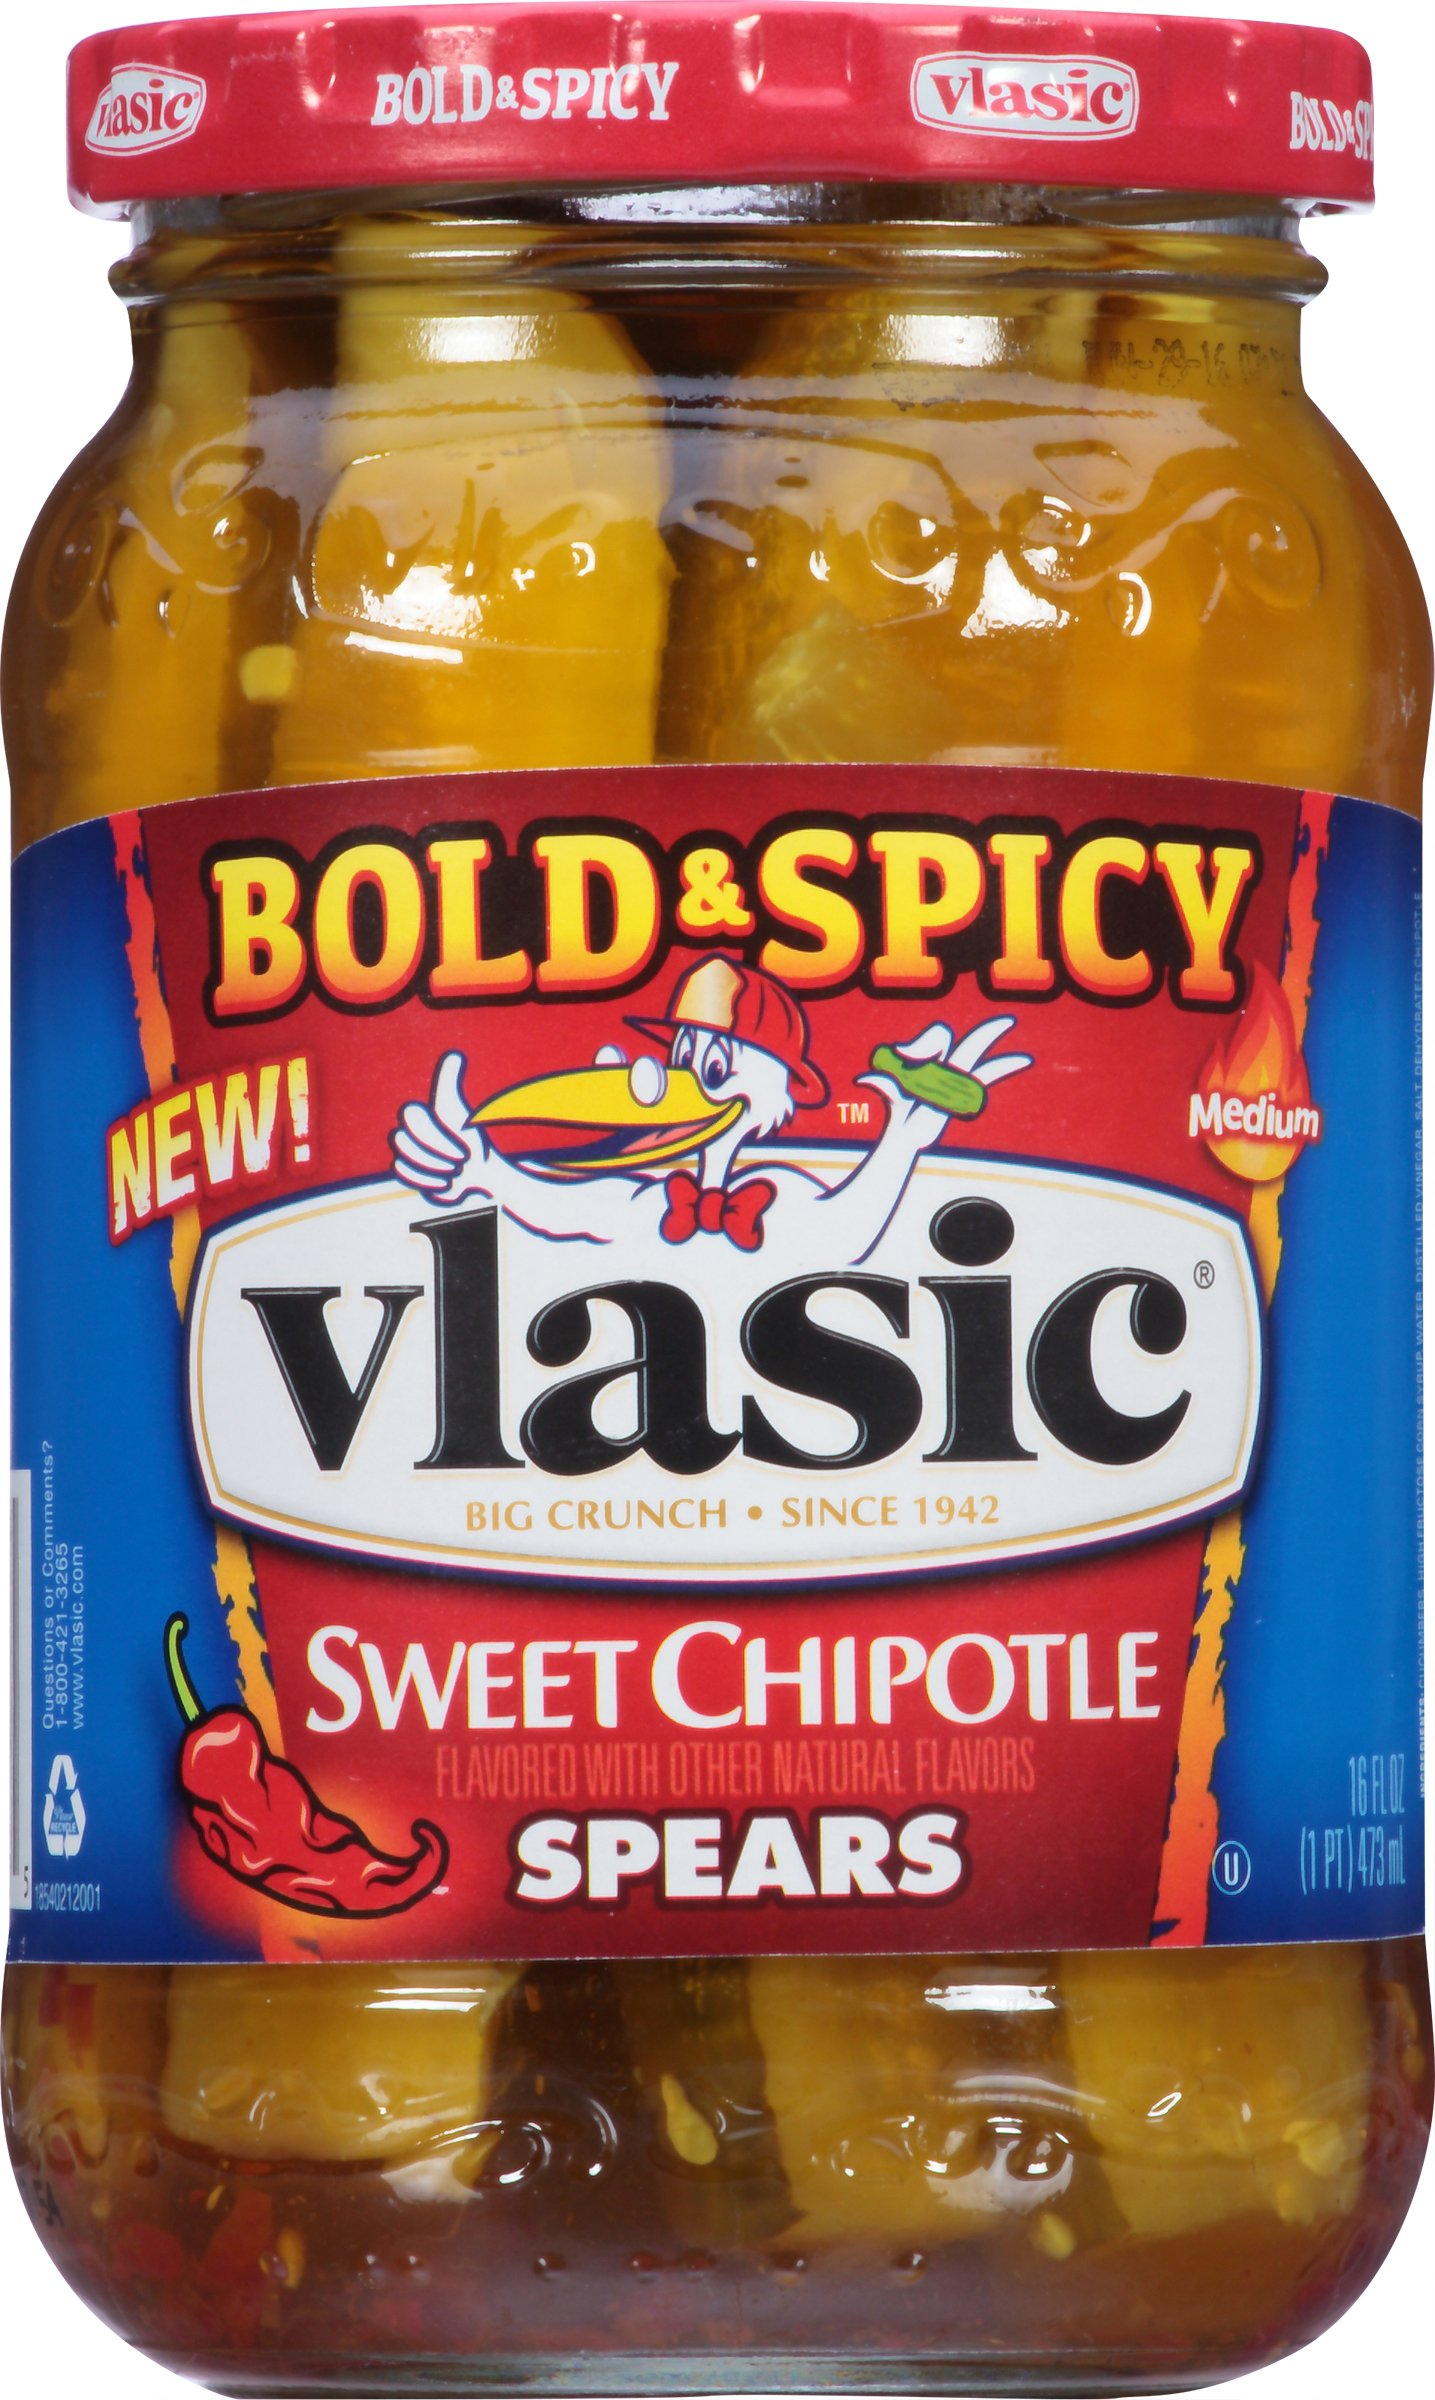 Vlasic Bold & Spicy Pickles, Sweet Chipotle Spears, 16 Ounce (Pack of 6) by Vlasic